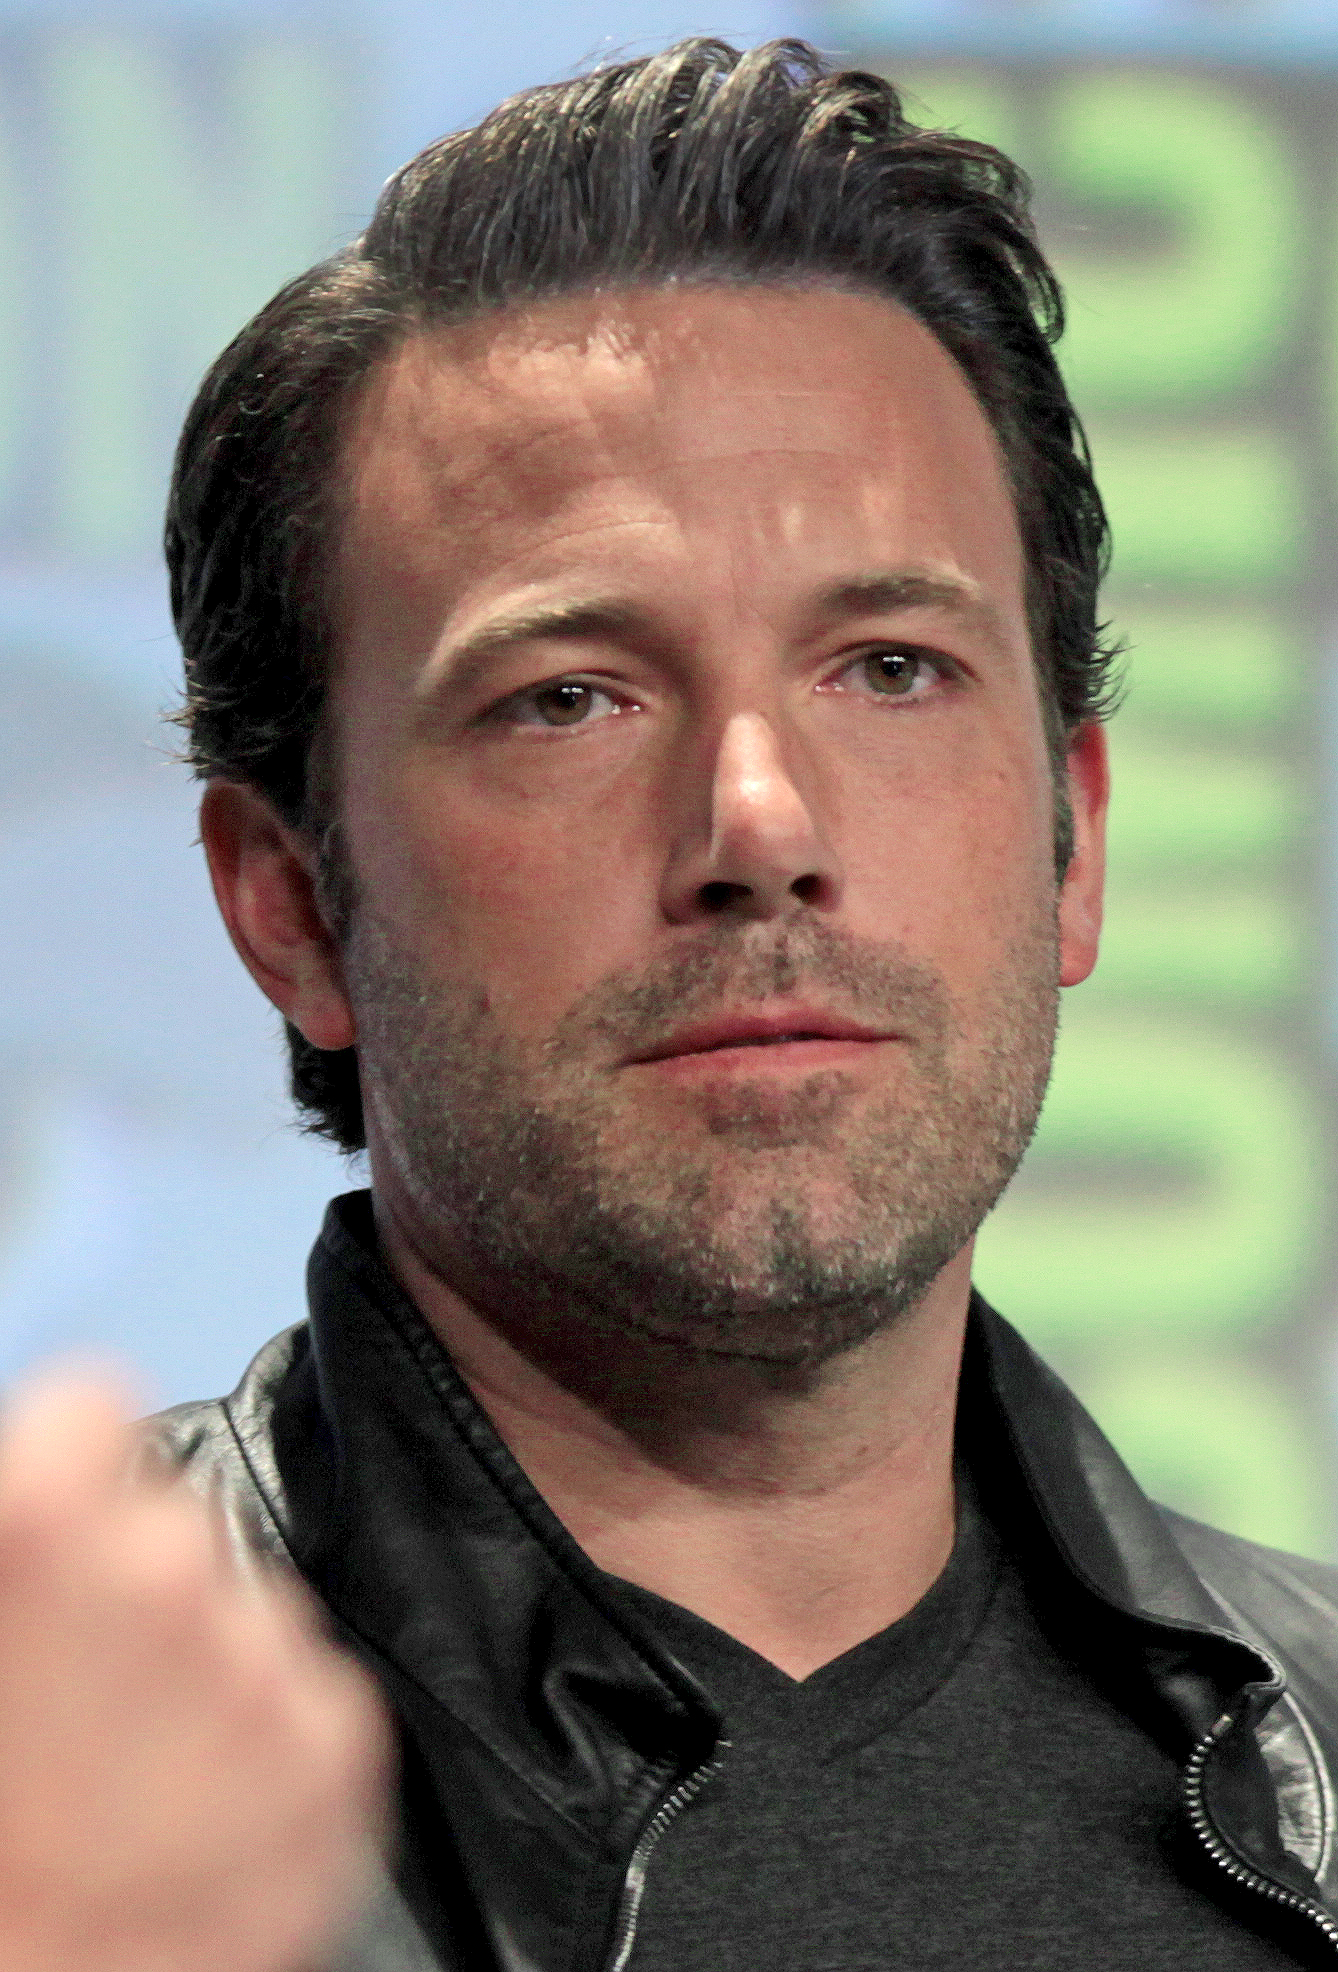 Ben Affleck teases pot... Ben Affleck